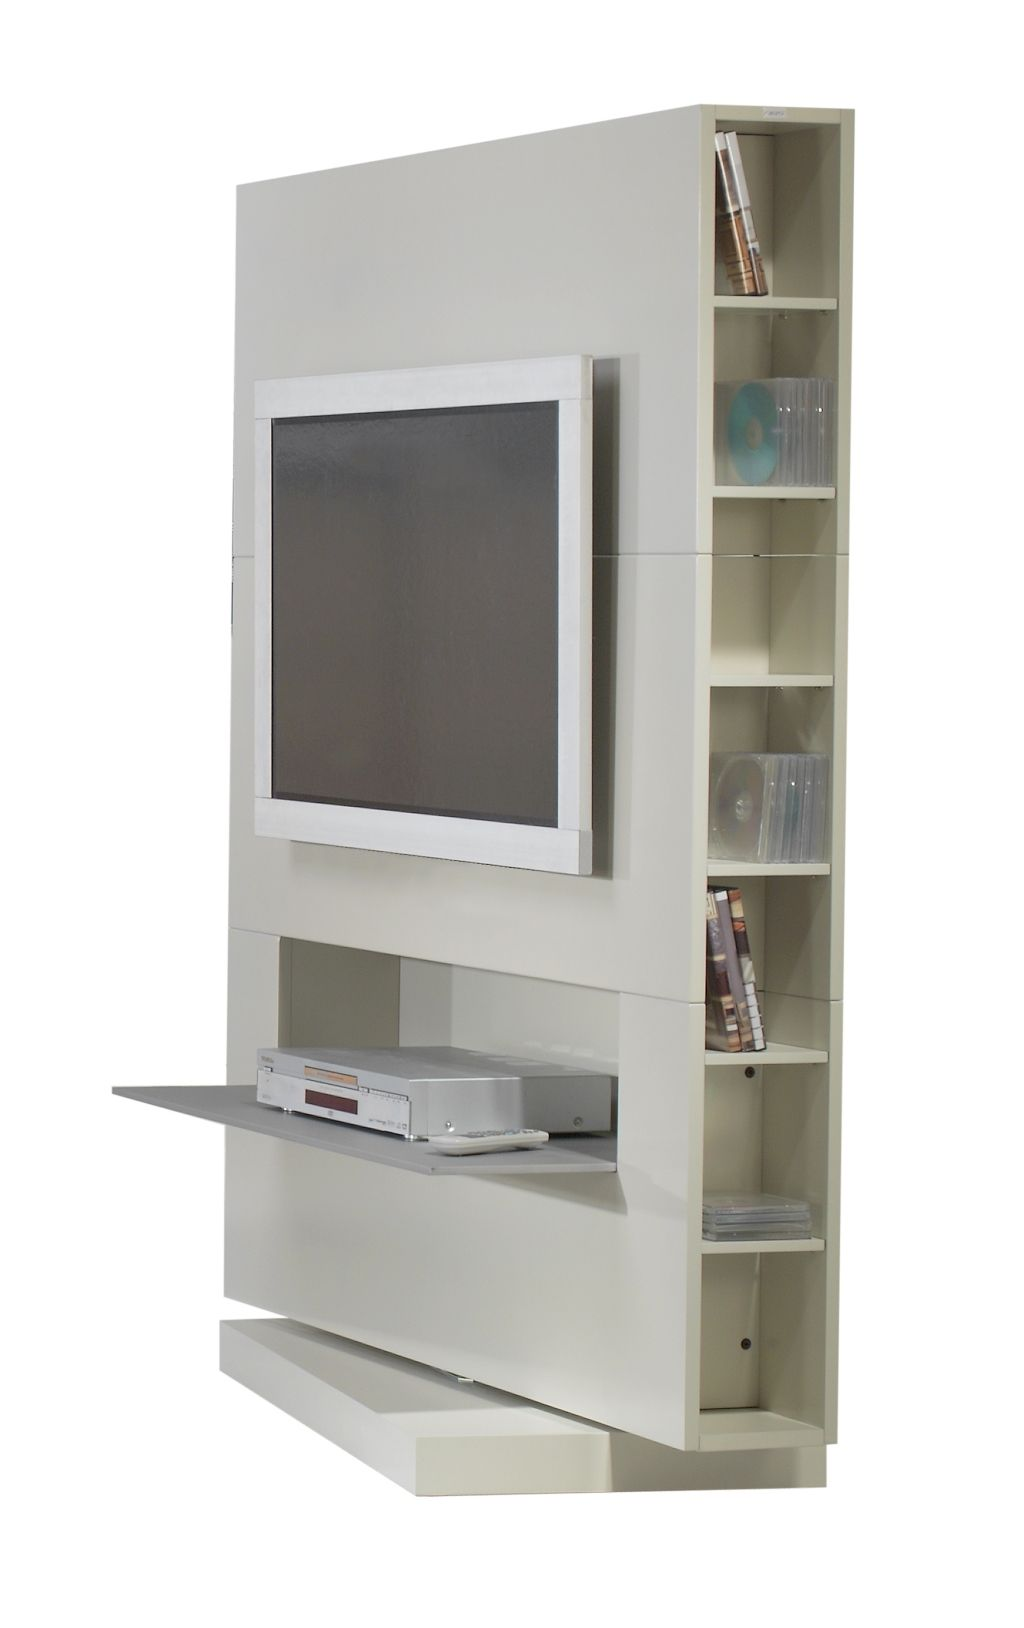 Meuble tv separation de piece - Meuble separation de pieces design ...